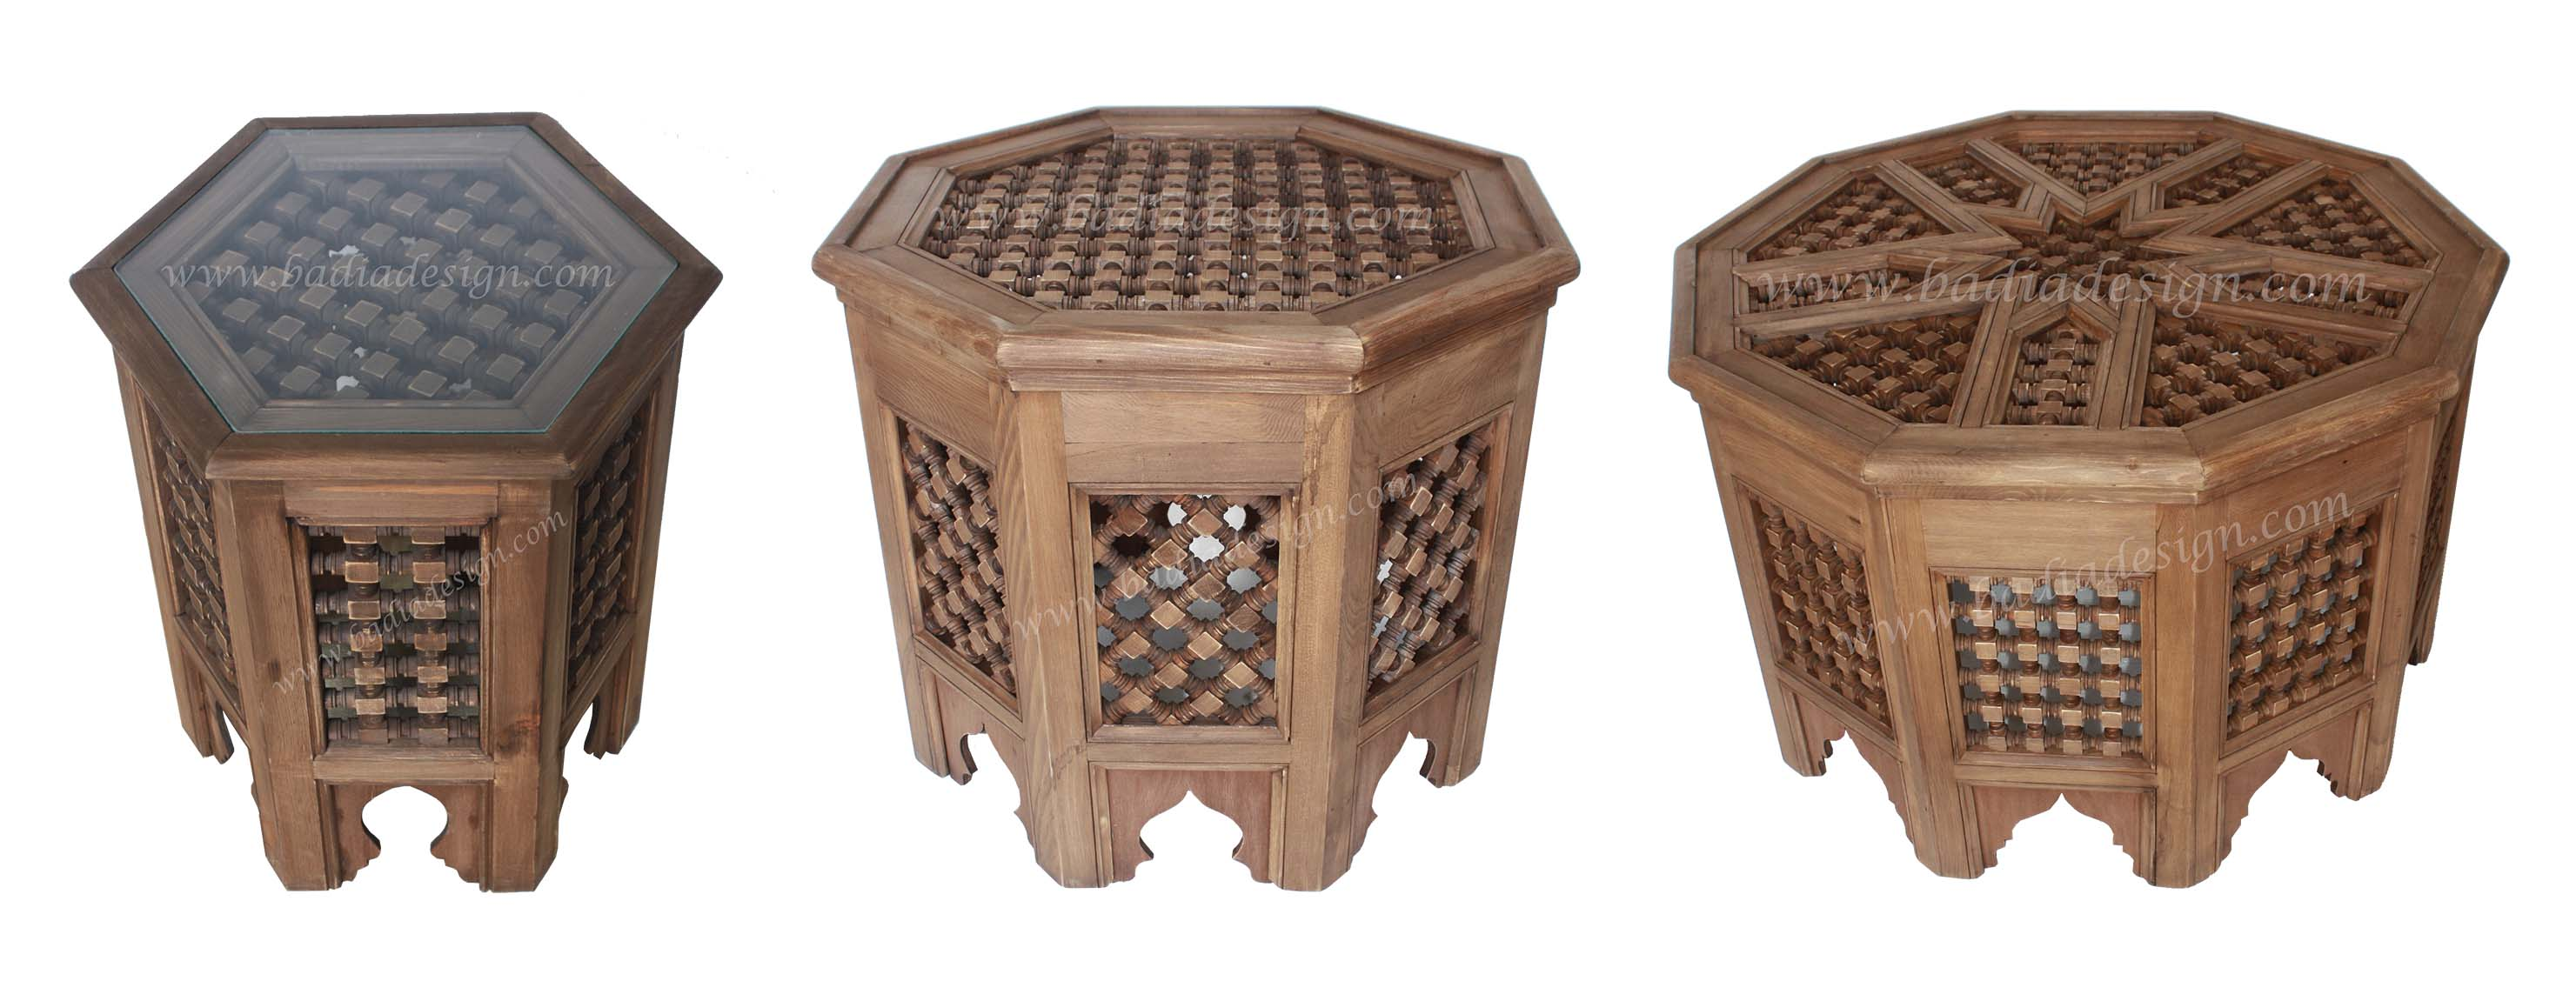 moroccan-wooden-coffee-table-cw-st010.jpg